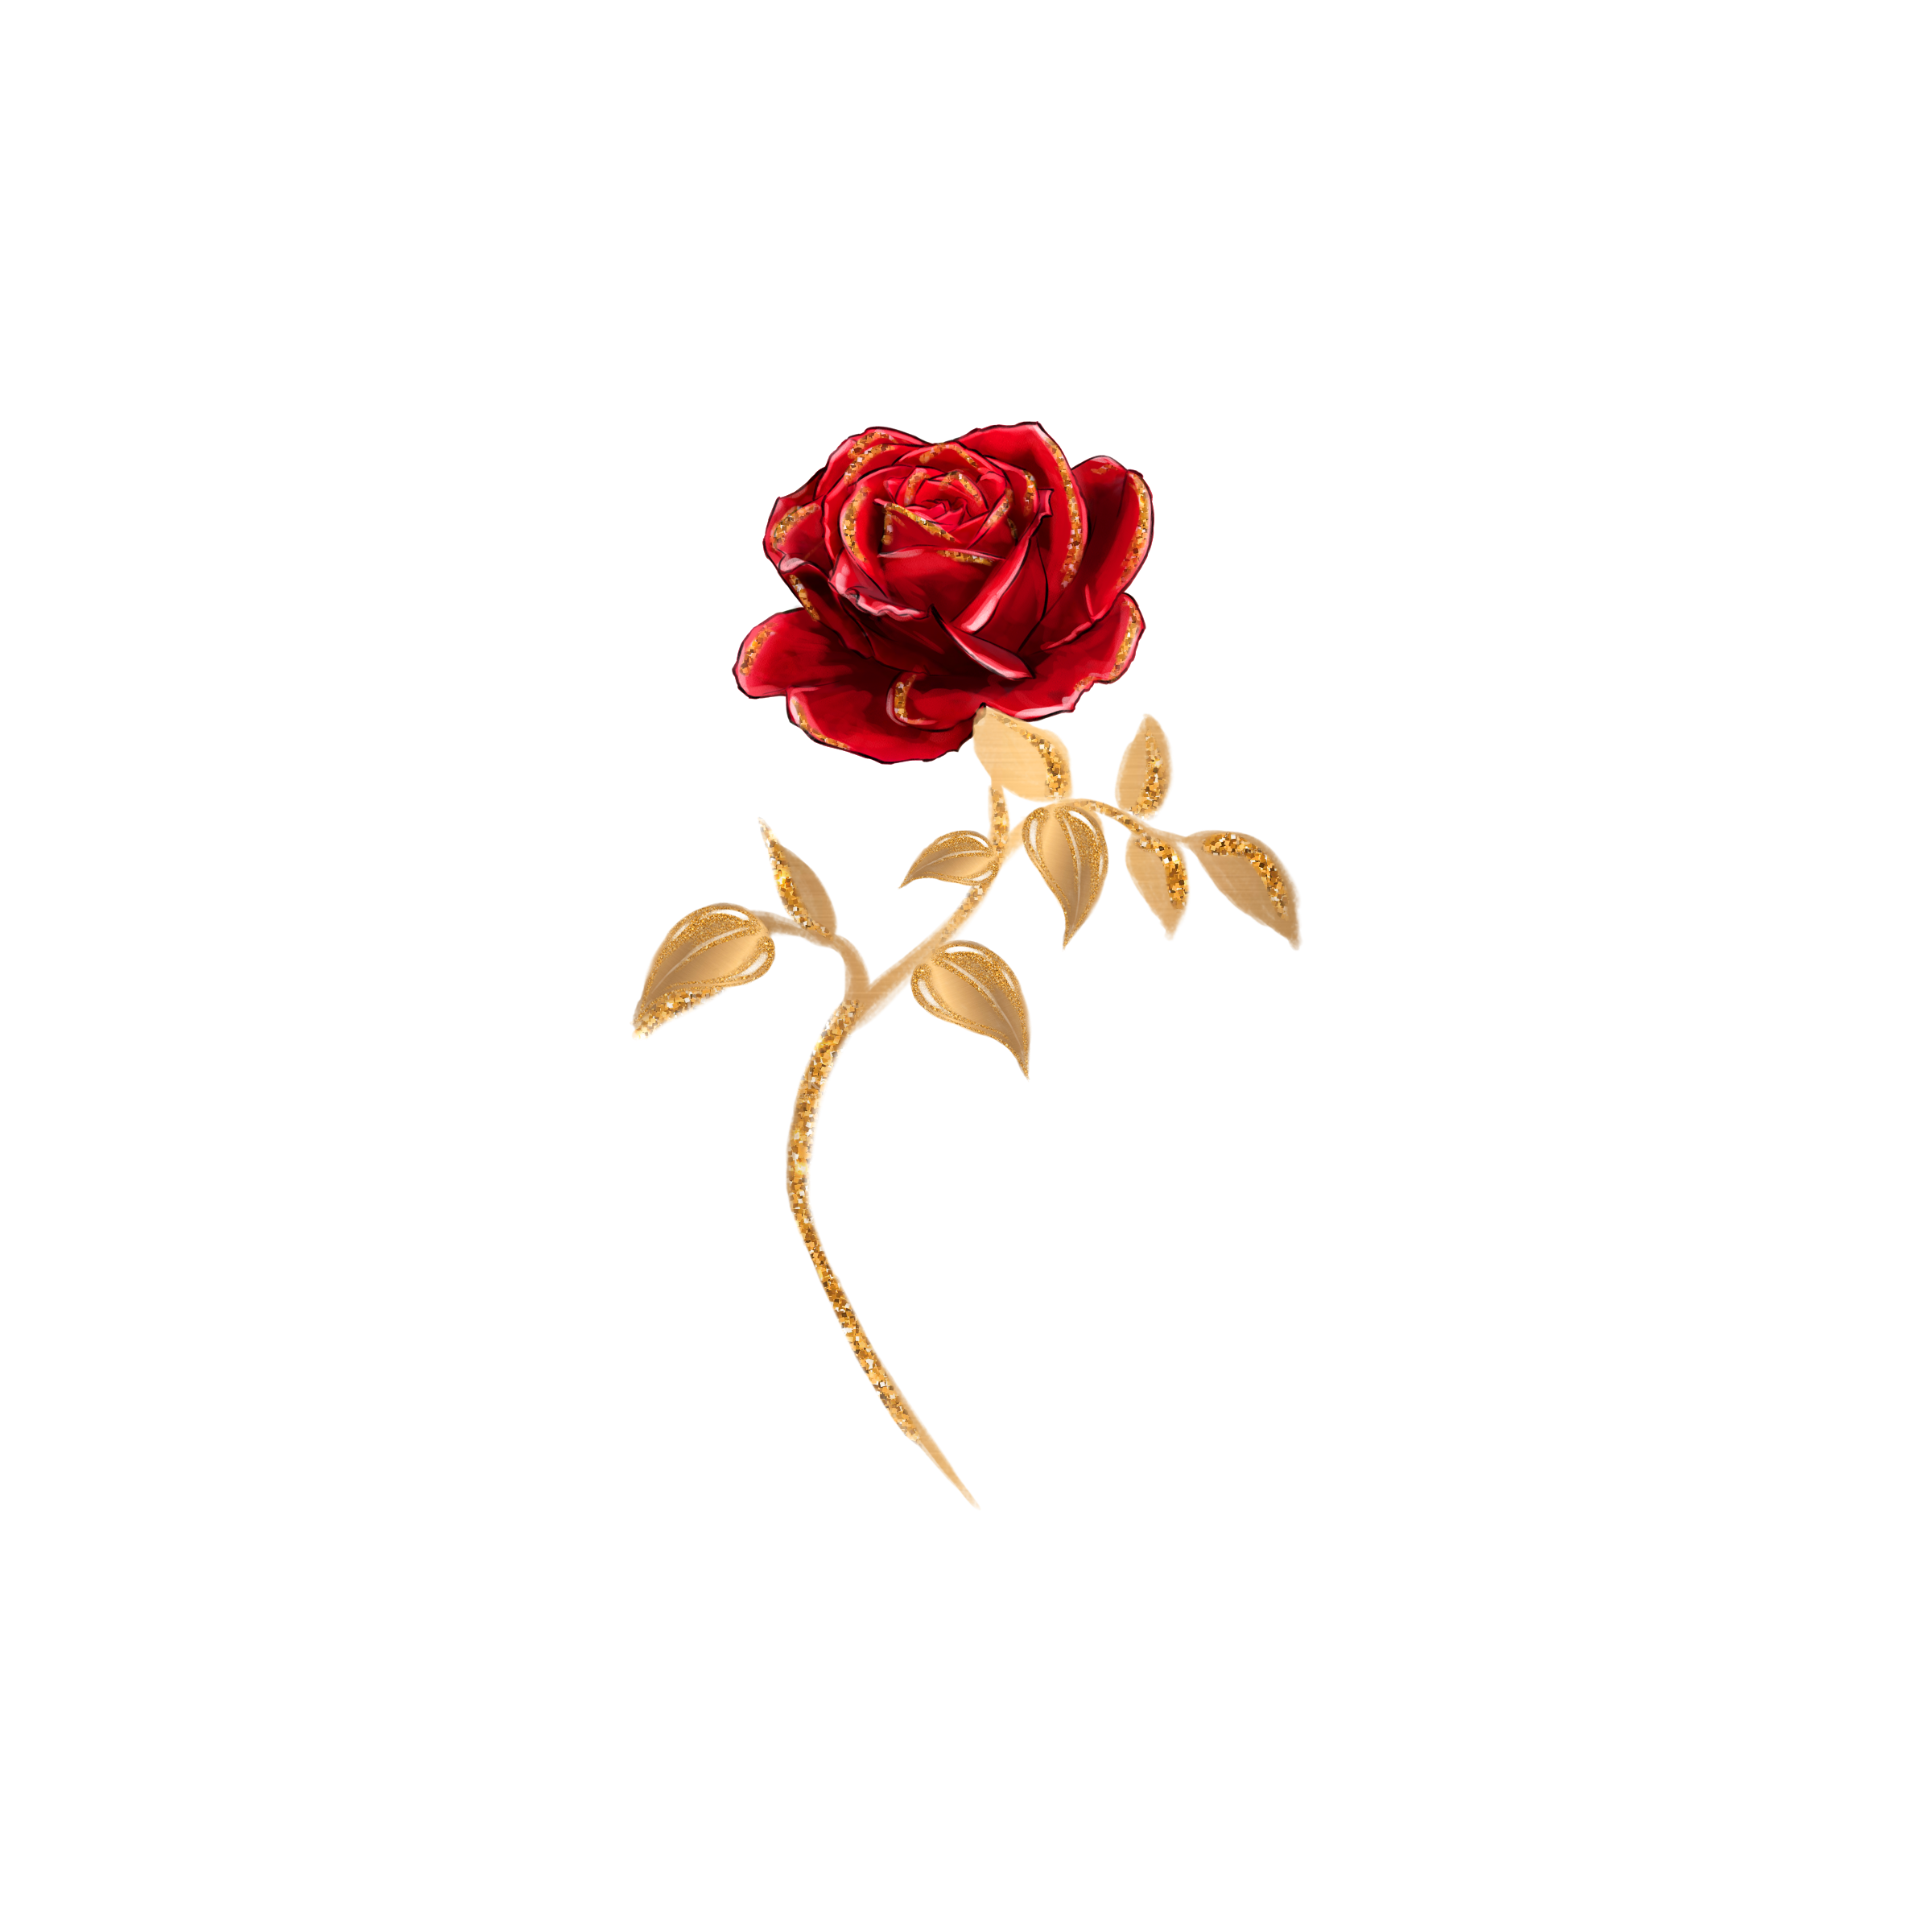 Beauty and the beast rose png. Instagram give away books